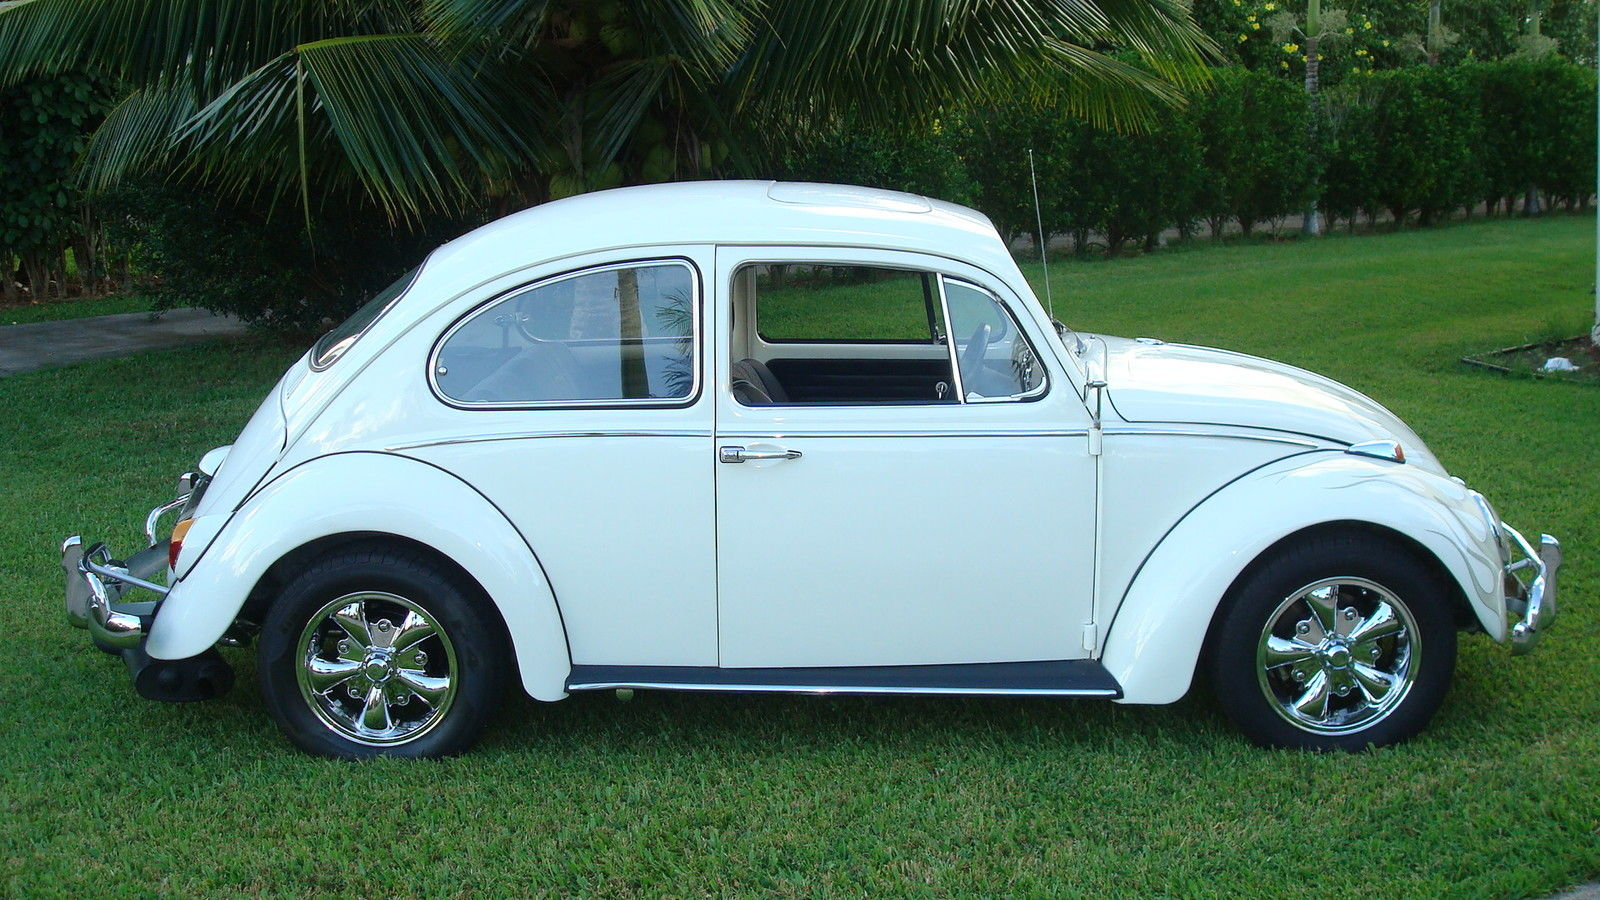 1966 V W Bug / Full Custom / Beautiful / Excellent Conditon - Classic Volkswagen Beetle ...